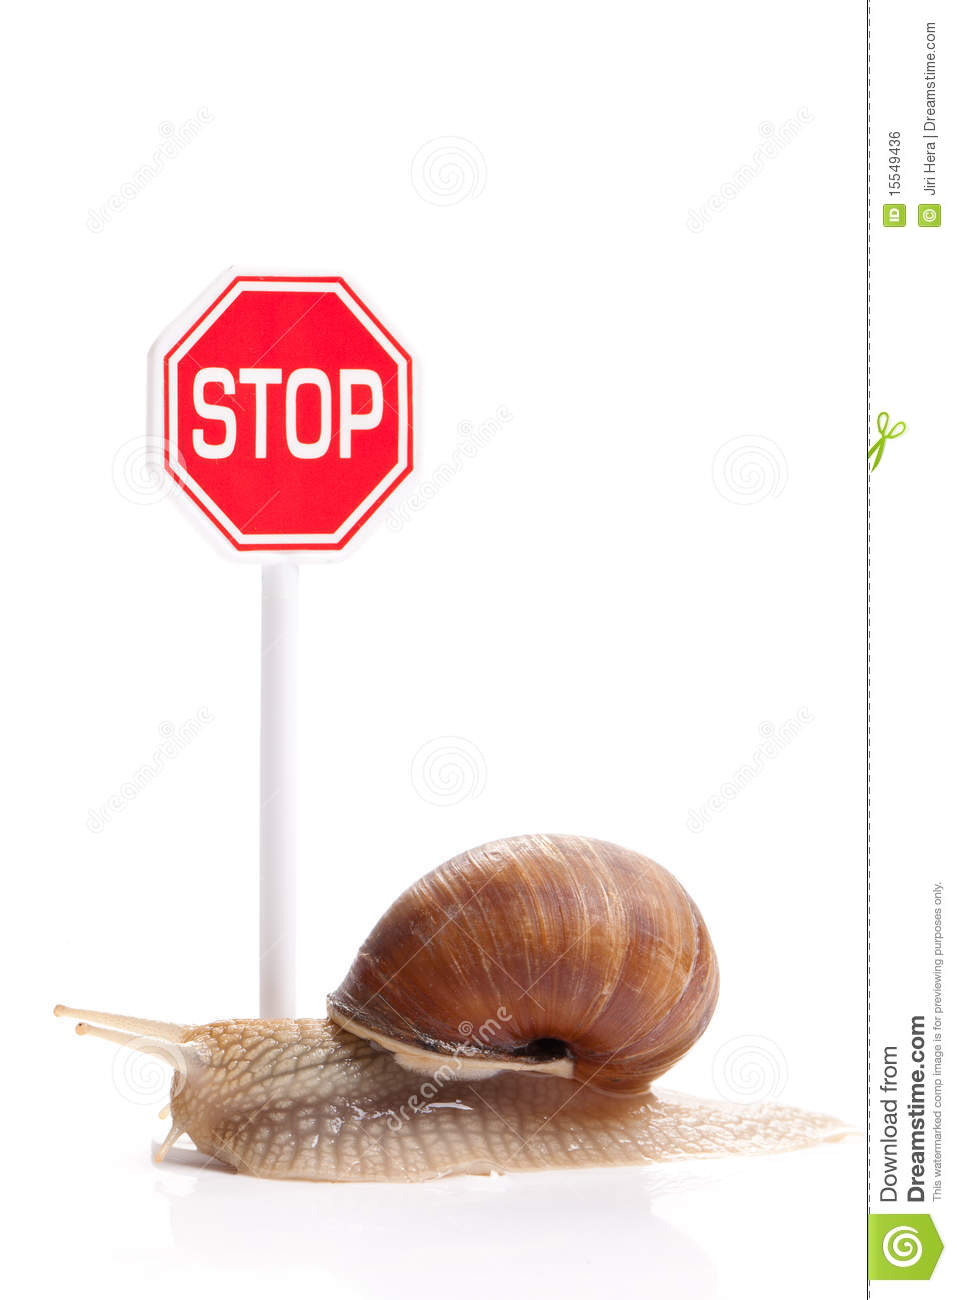 Garden Snail And Stop Traffic Sign Royalty Free Stock